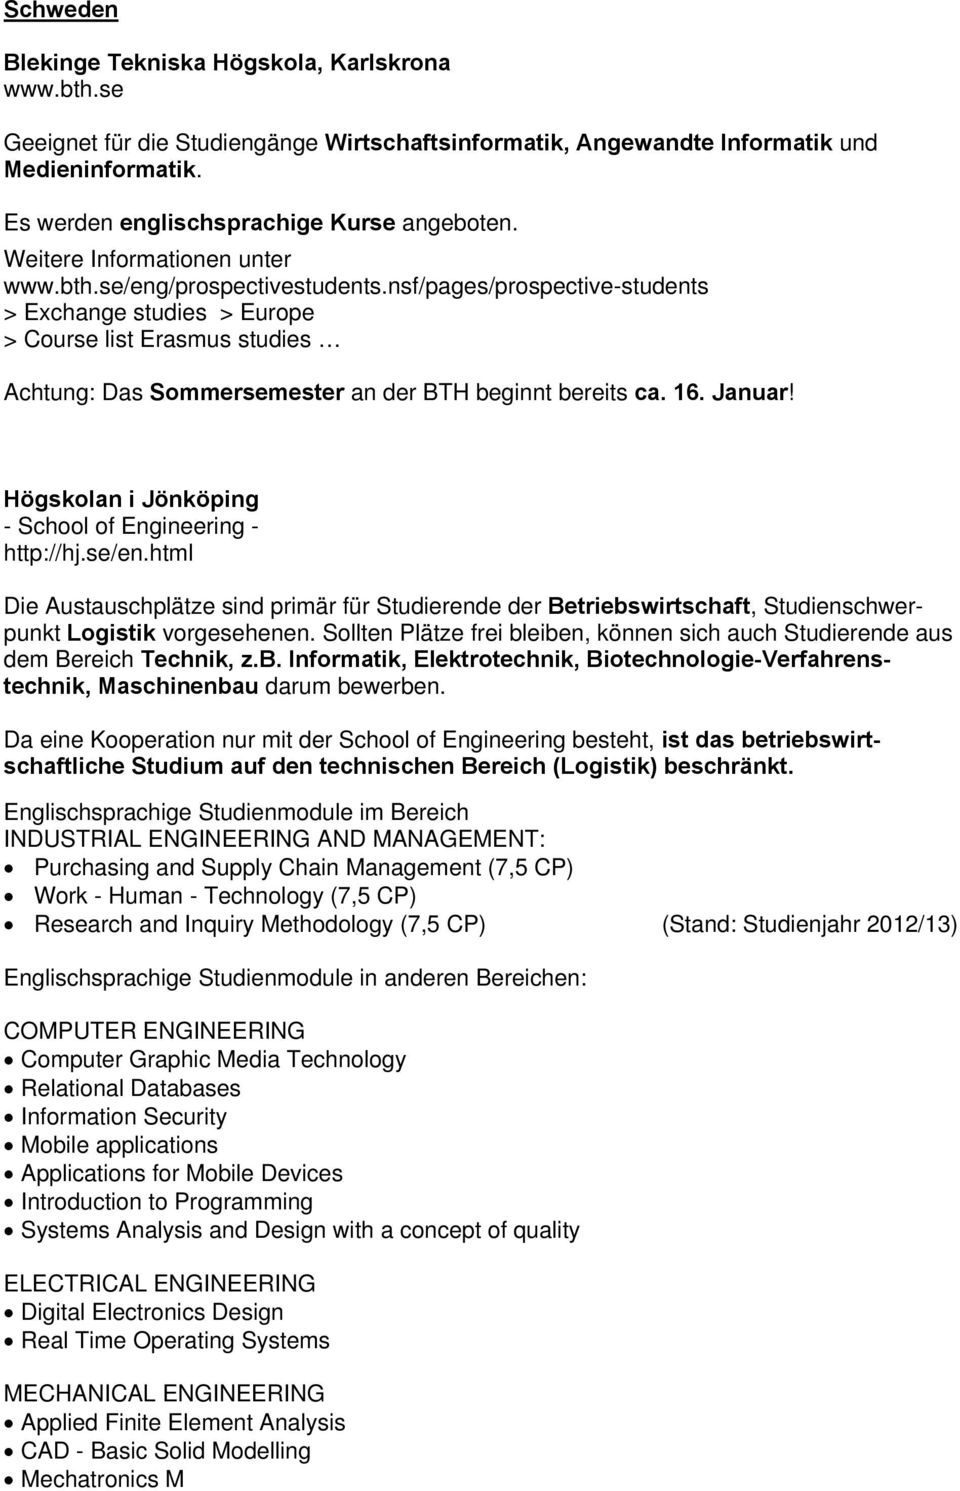 nsf/pages/prospective-students > Exchange studies > Europe > Course list Erasmus studies Achtung: Das Sommersemester an der BTH beginnt bereits ca. 16. Januar!